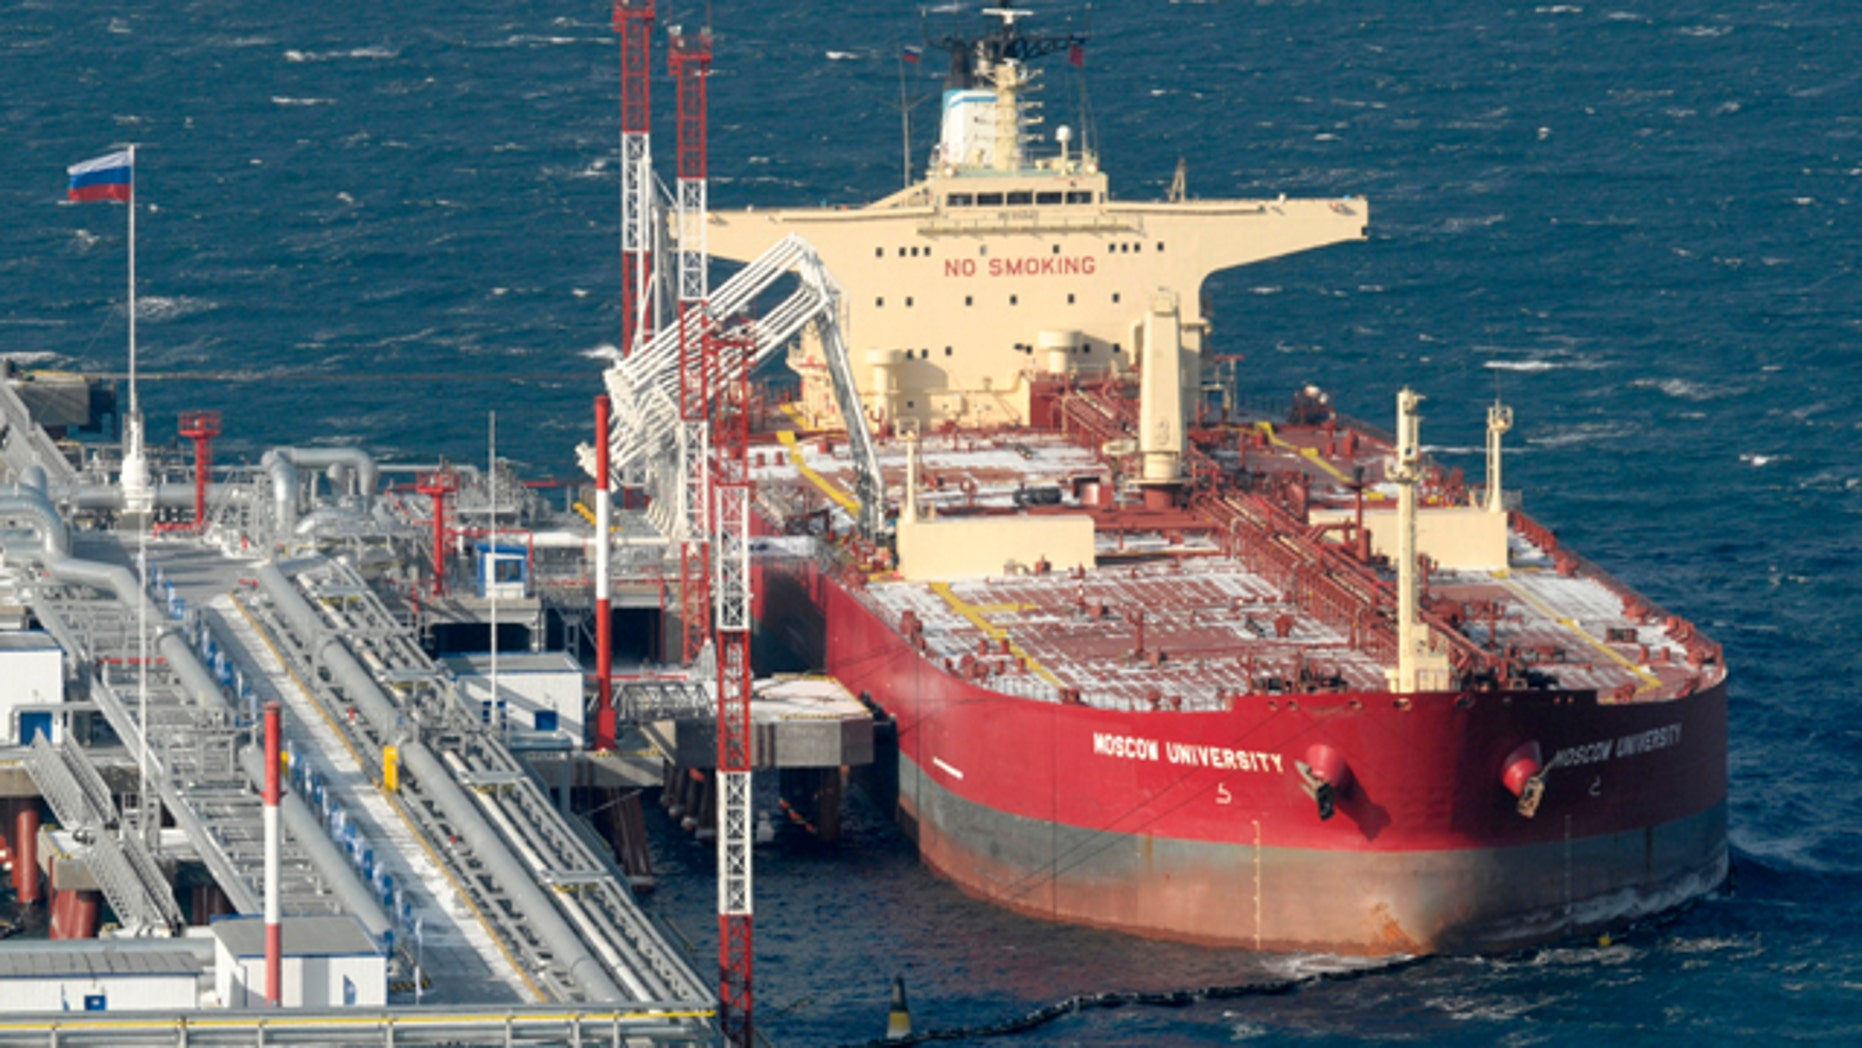 The Russian oil tanker known as Moscow University, seen in this 2009 file photo, was freed from pirates Thursday by Russian forces.